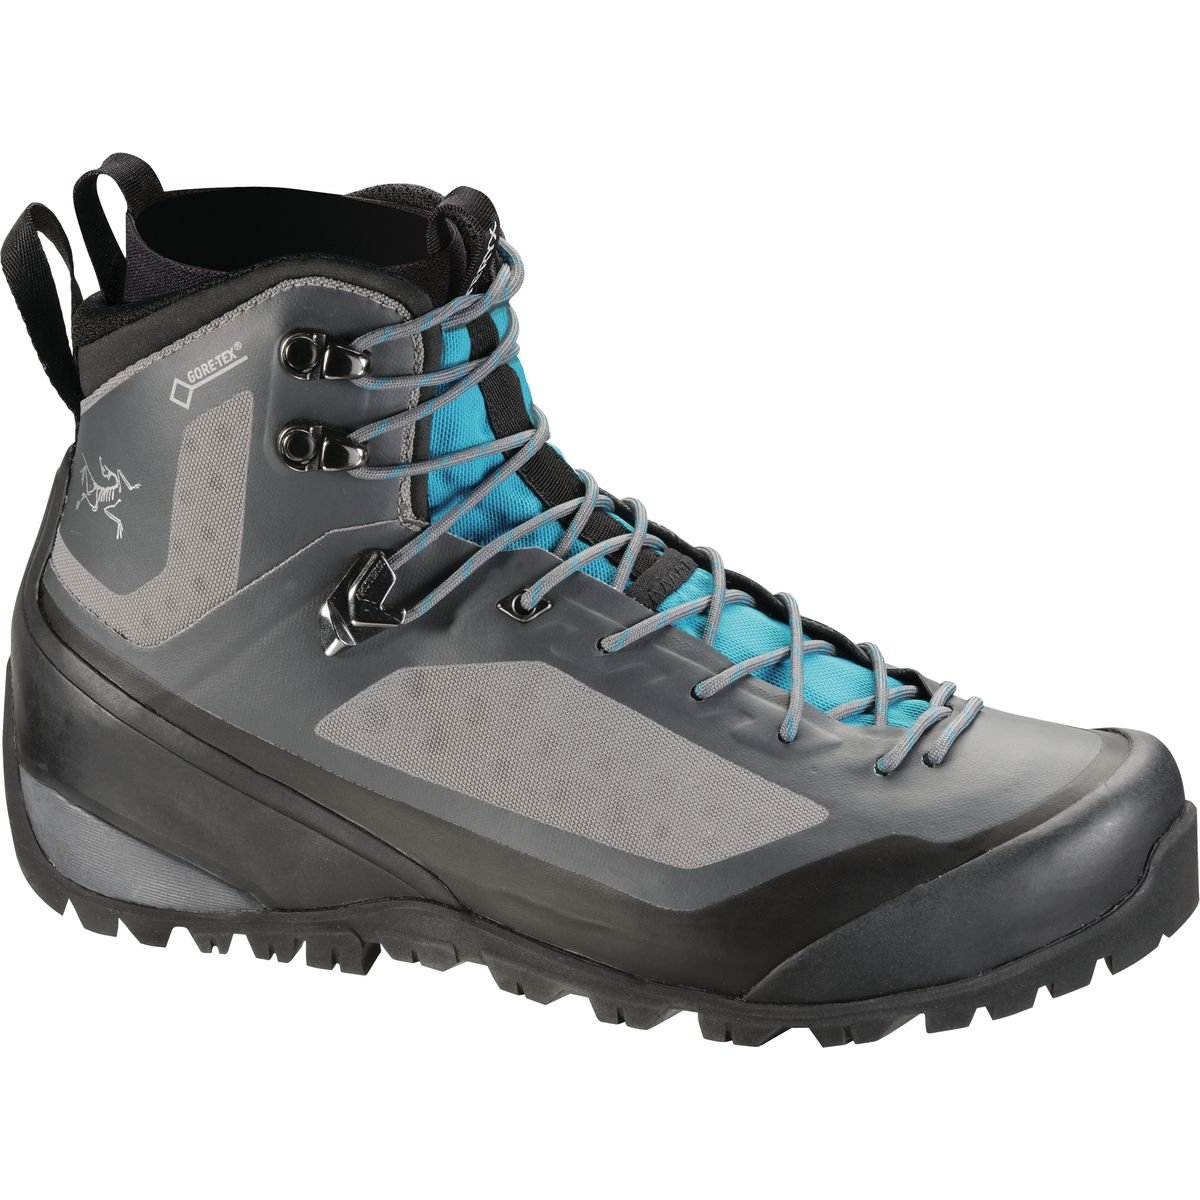 ARCTERYX Bora2 Mid Hiking Boot - Womens Boots 9 Light Graphite/Big Surf